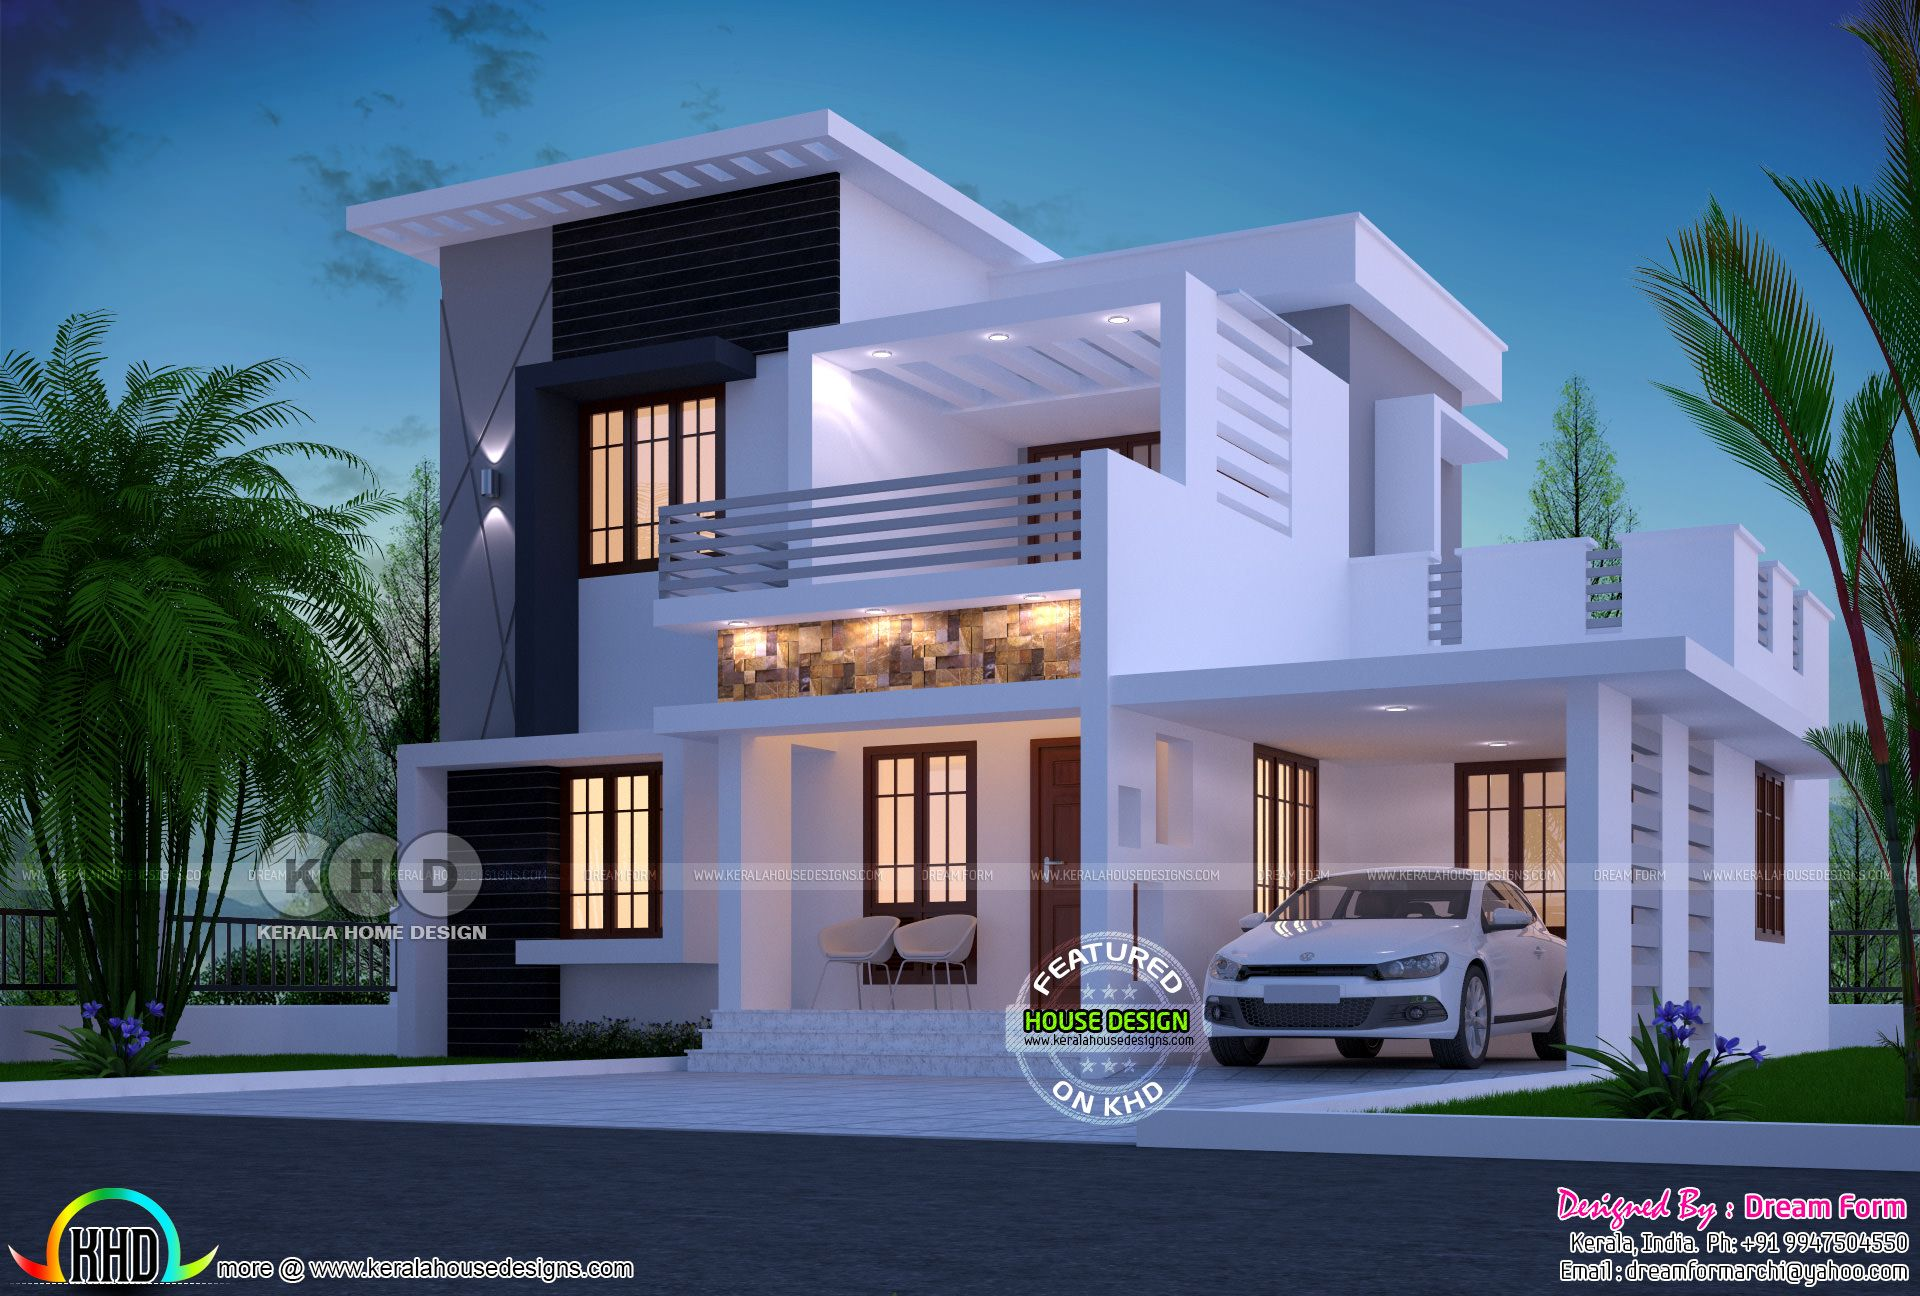 1750 Square Feet 4 Bhk Modern Home Design Kerala House Design